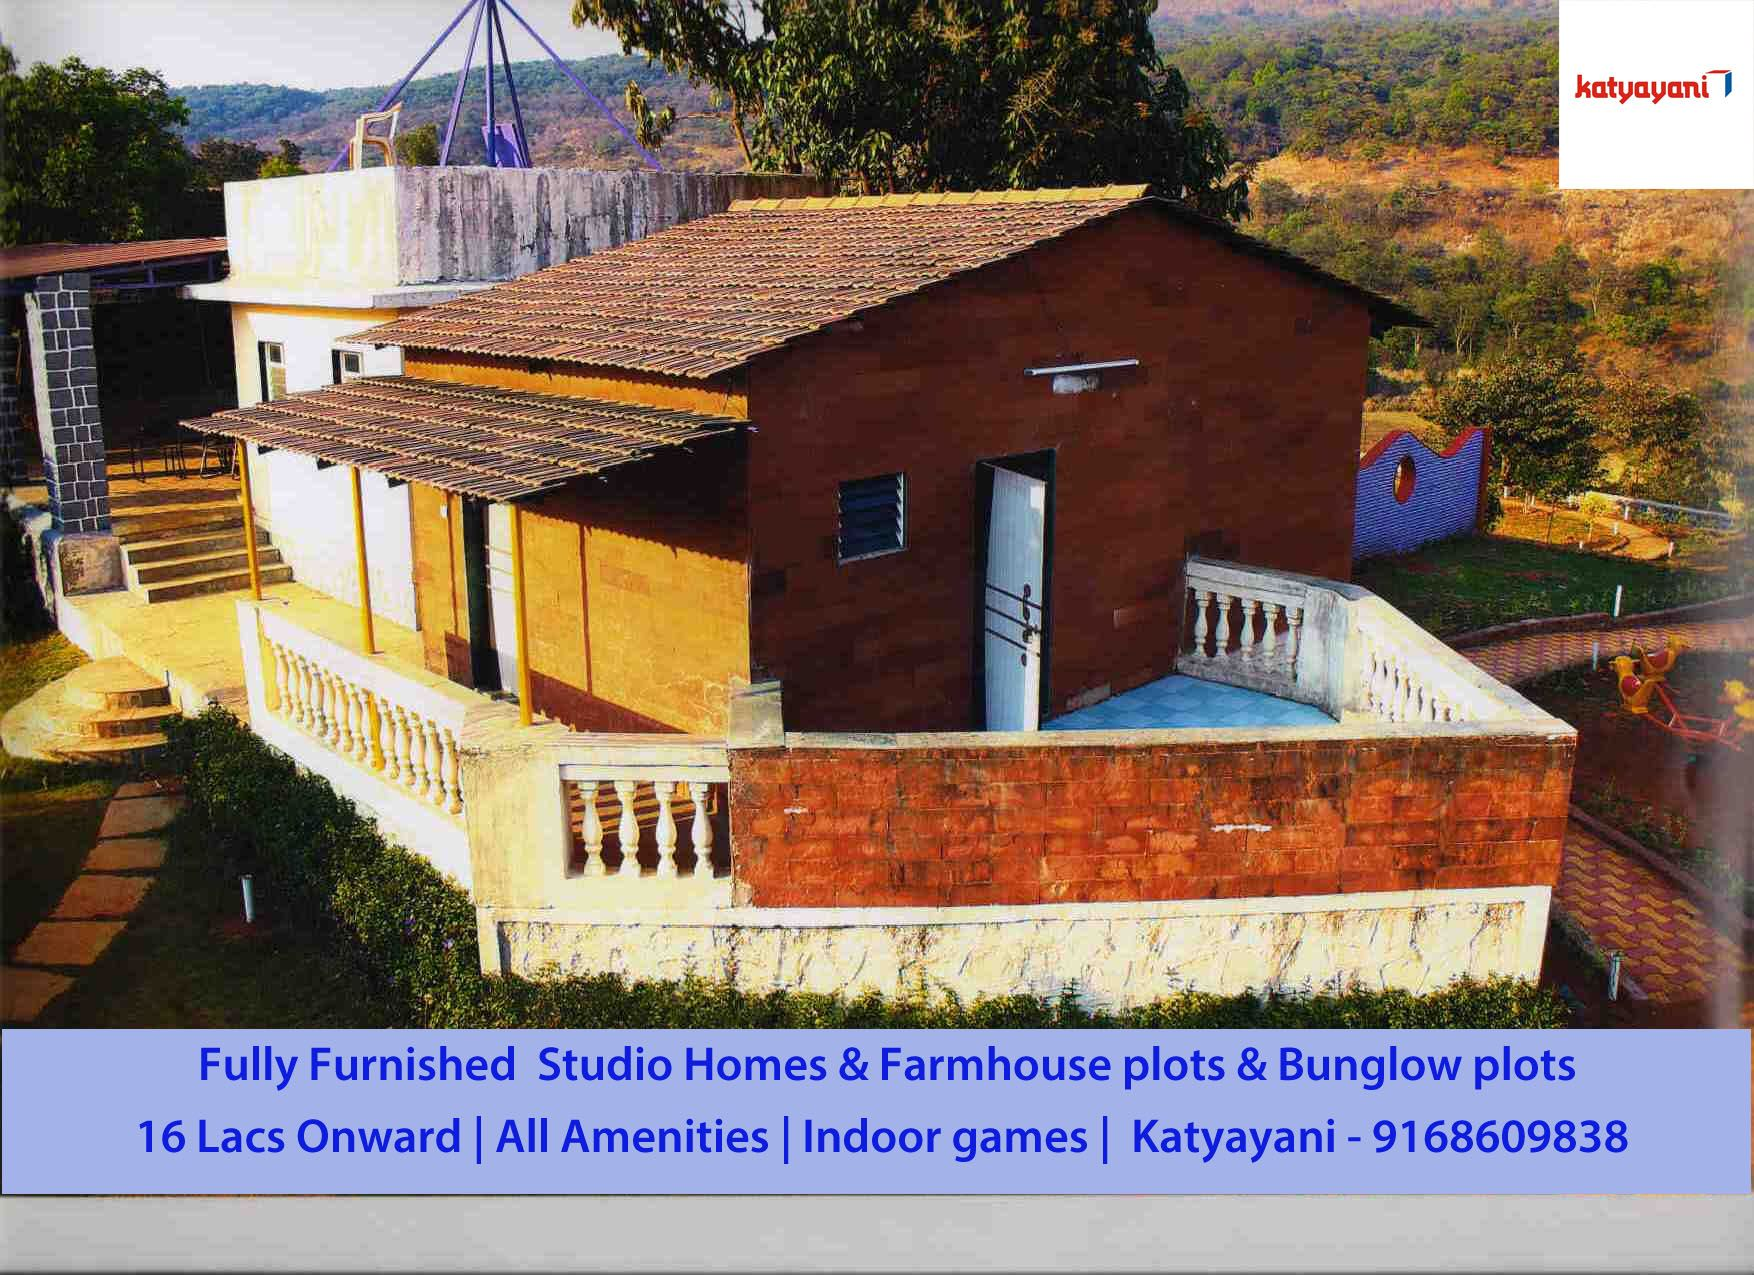 Fully furnished studiohomes & Farmhouse plots & Bunglow